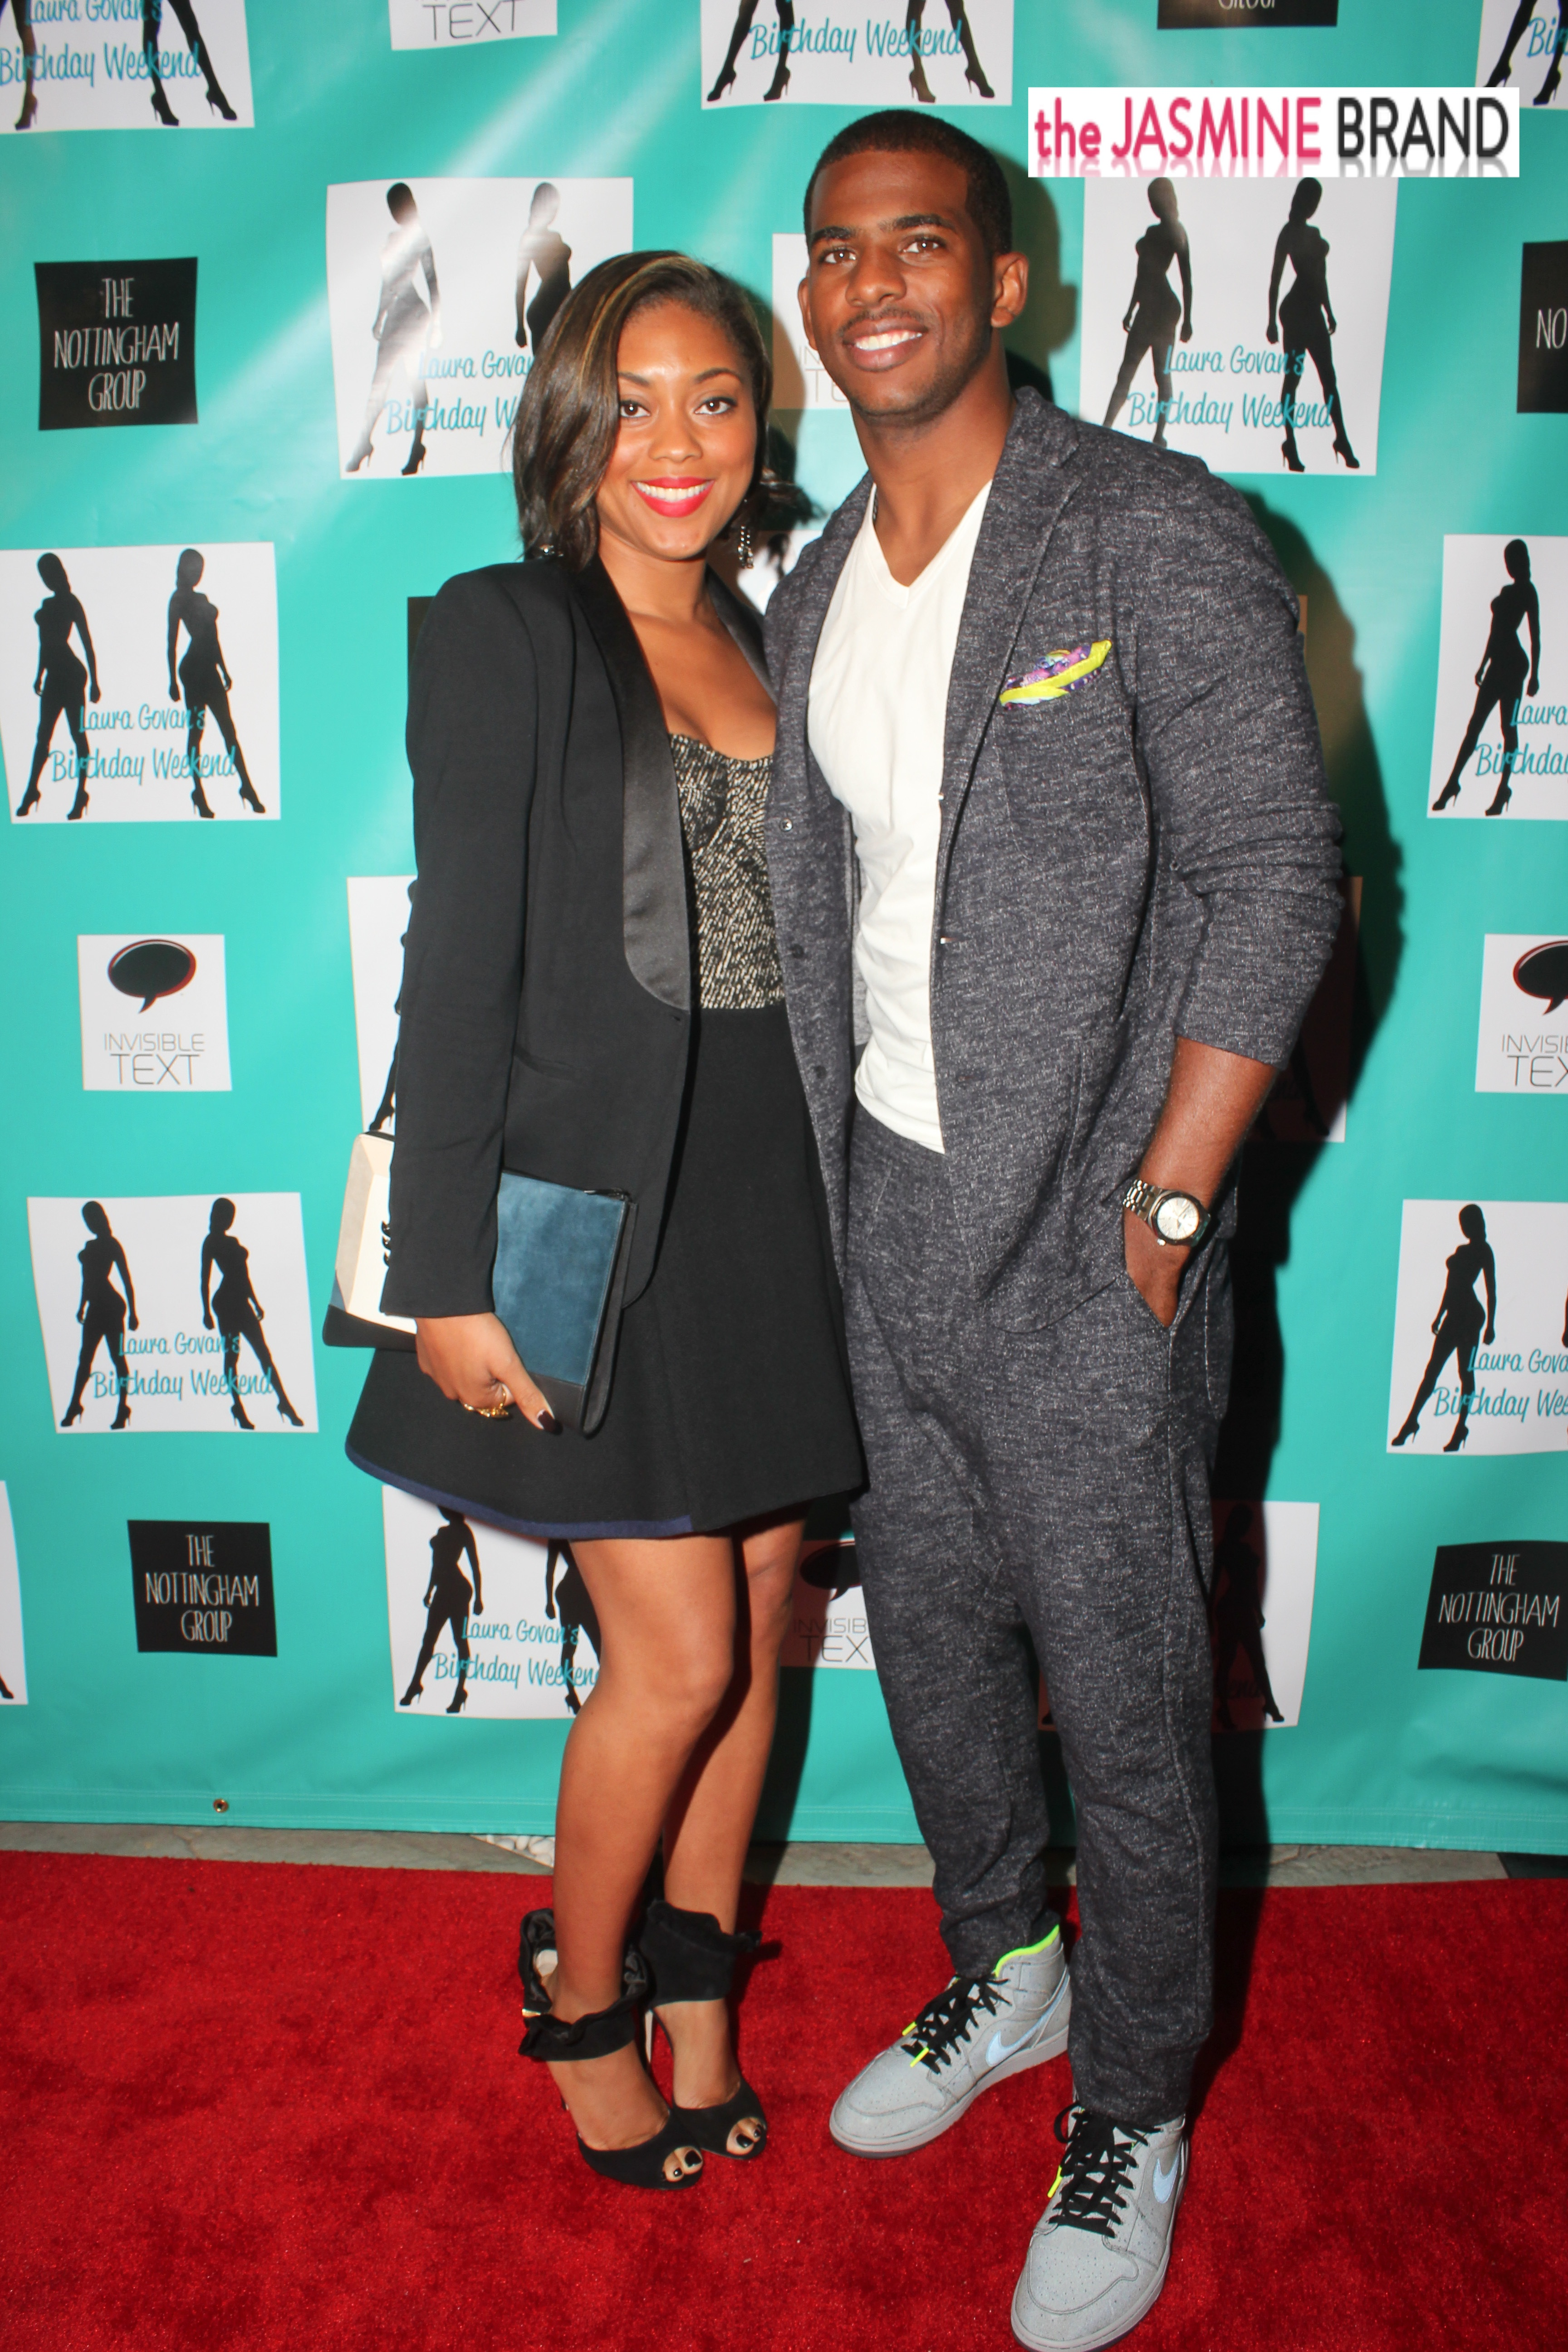 chris paul-wife jada paul-laura govan birthday party 2013-the jasmine brand